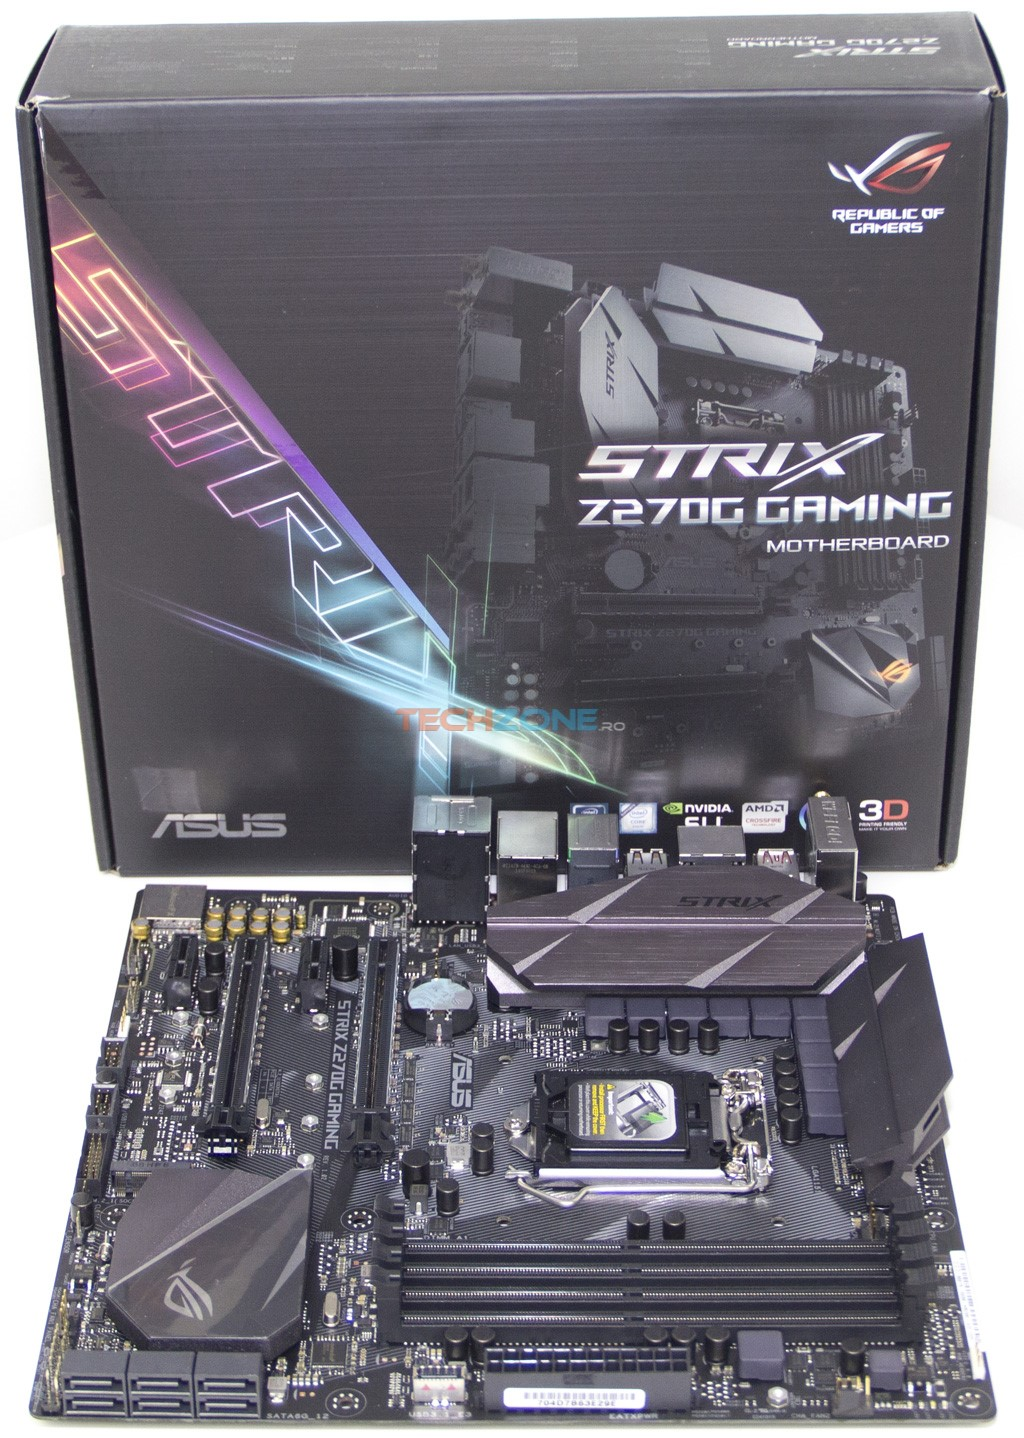 Asus Strix Z270G set